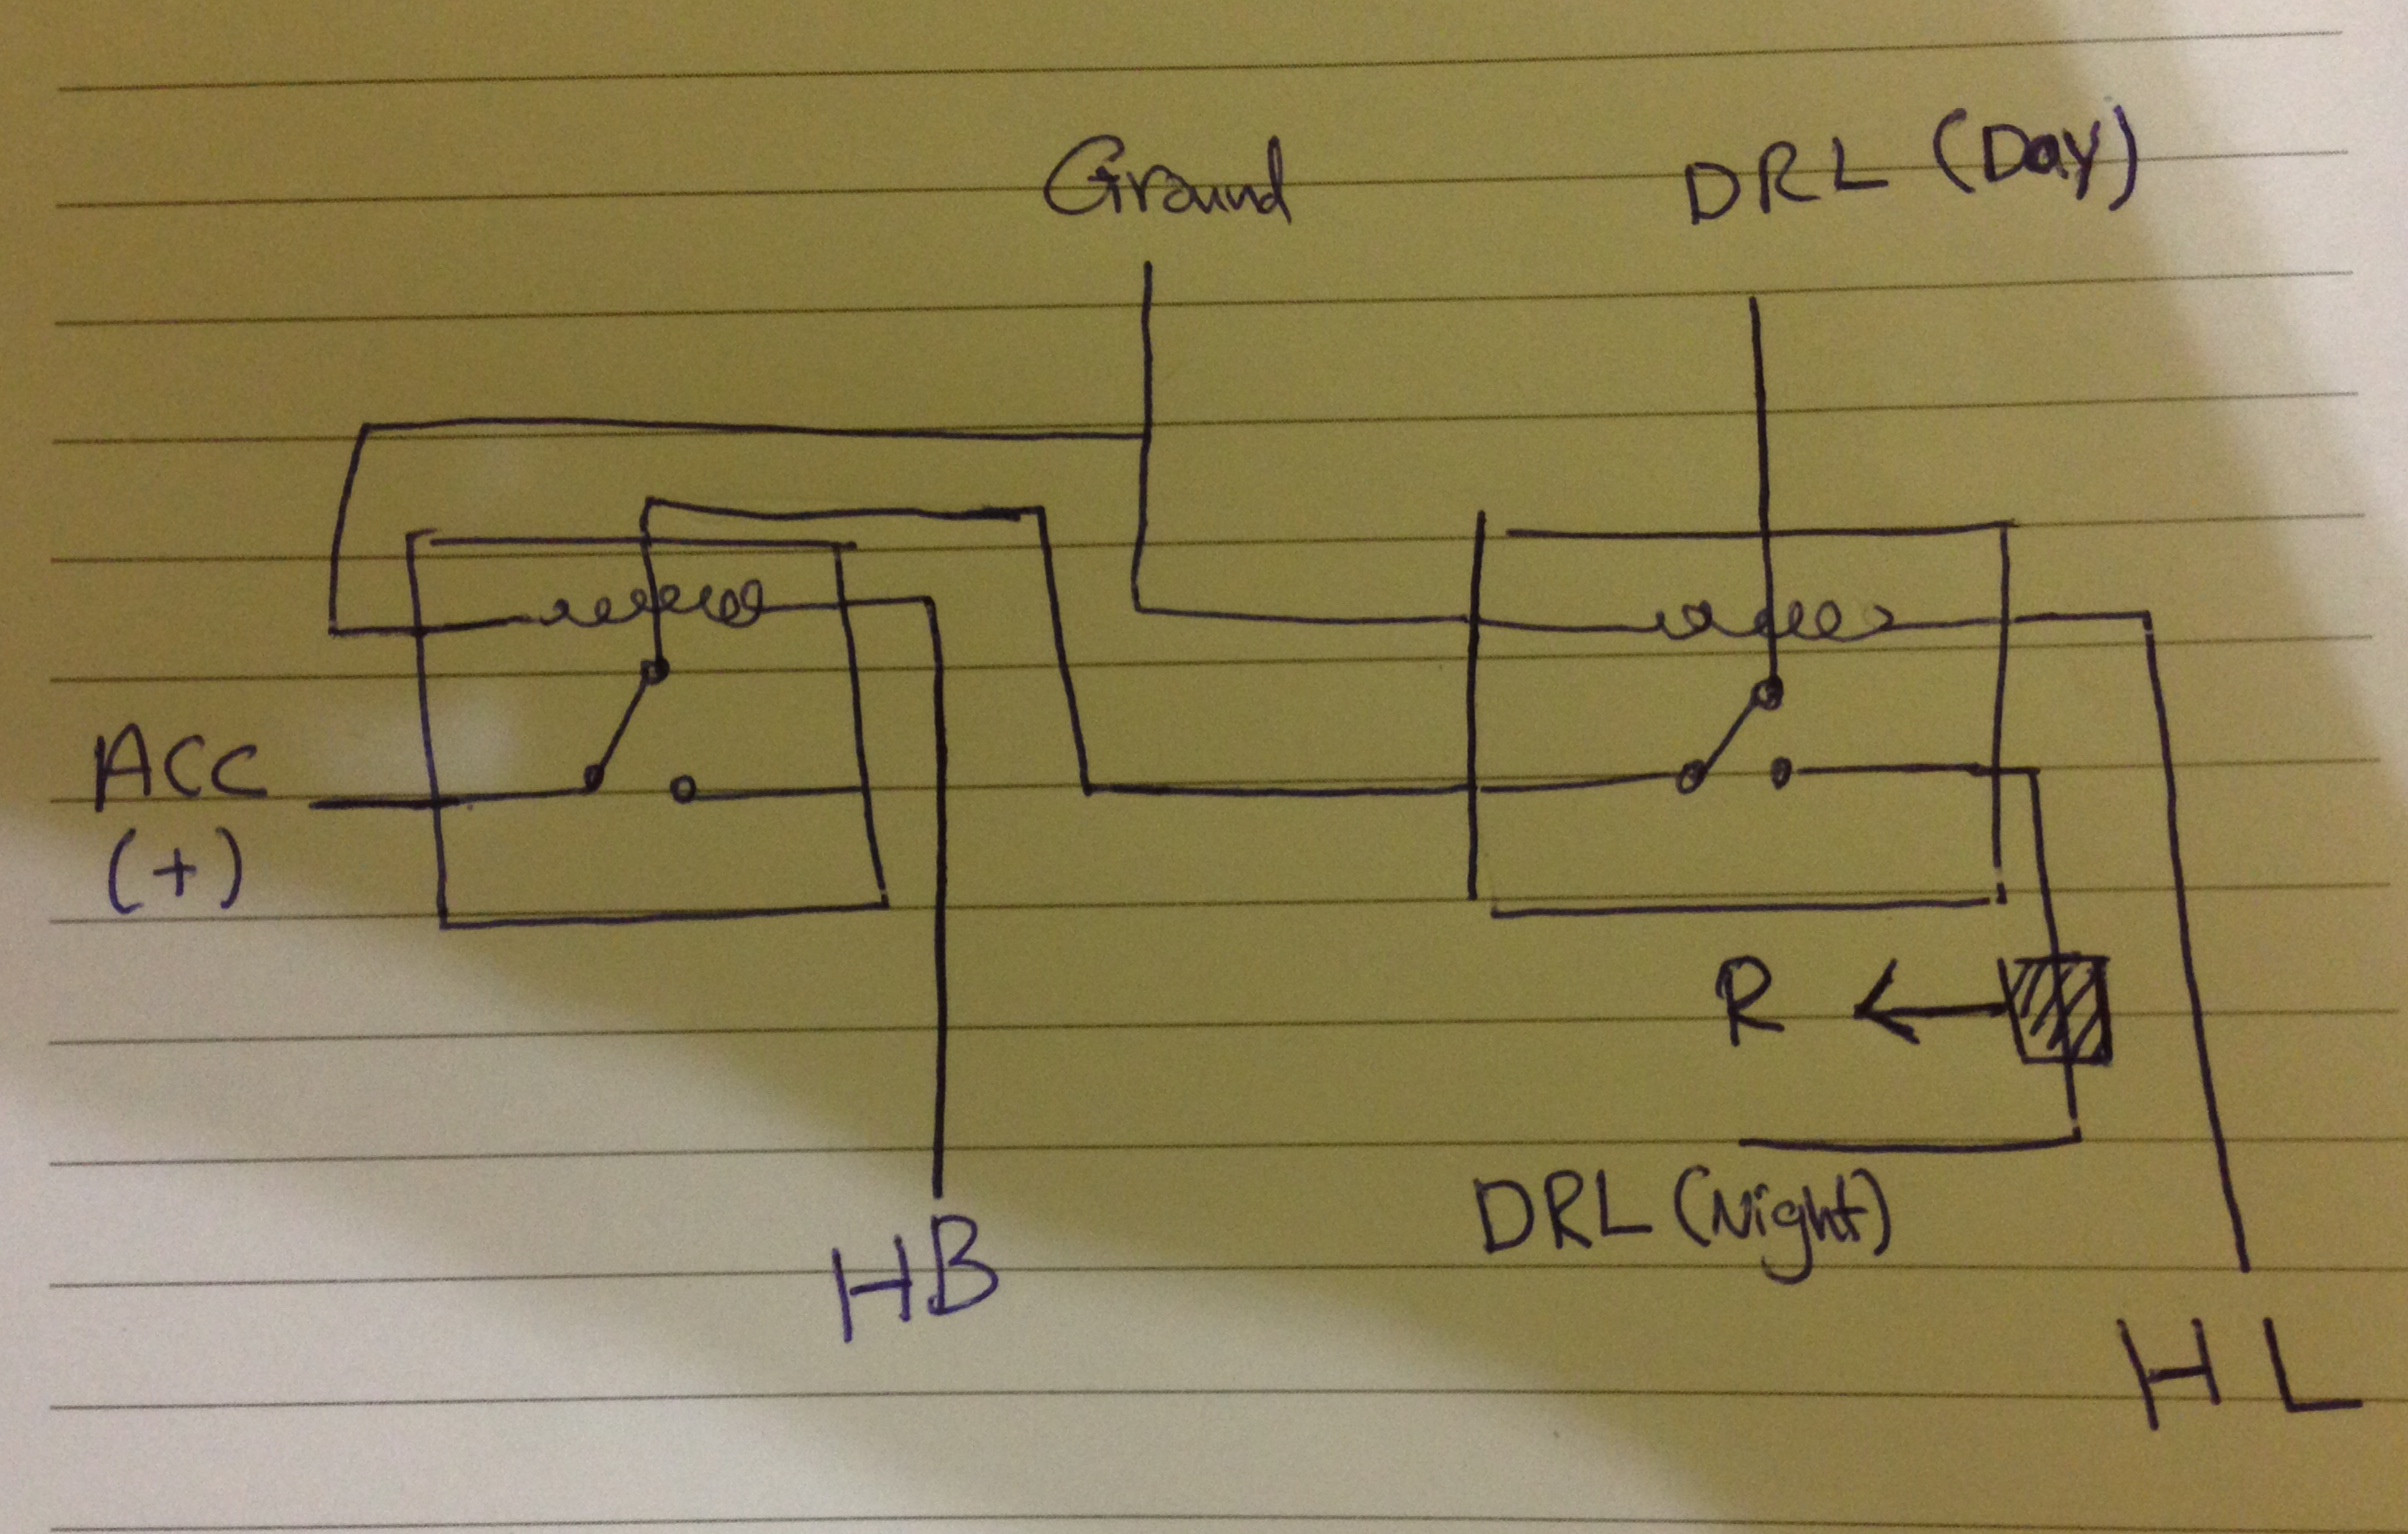 Verlichting Hardlopen Running Lamp Relay Switch Diagram Trusted Wiring Diagram